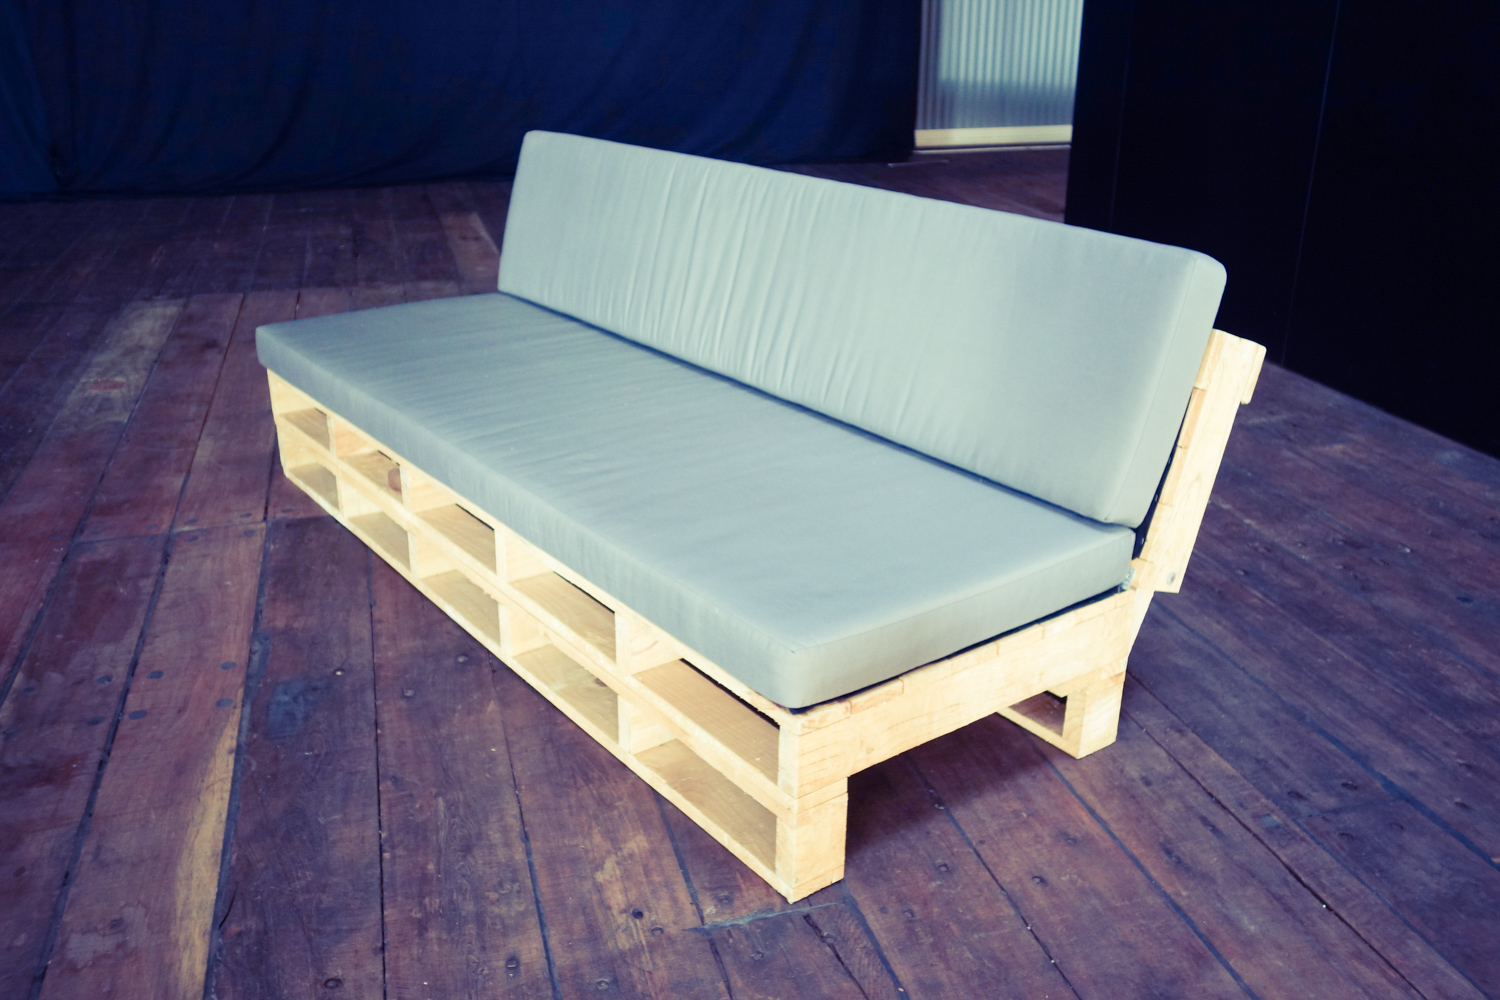 Couches (7 of 14).jpg